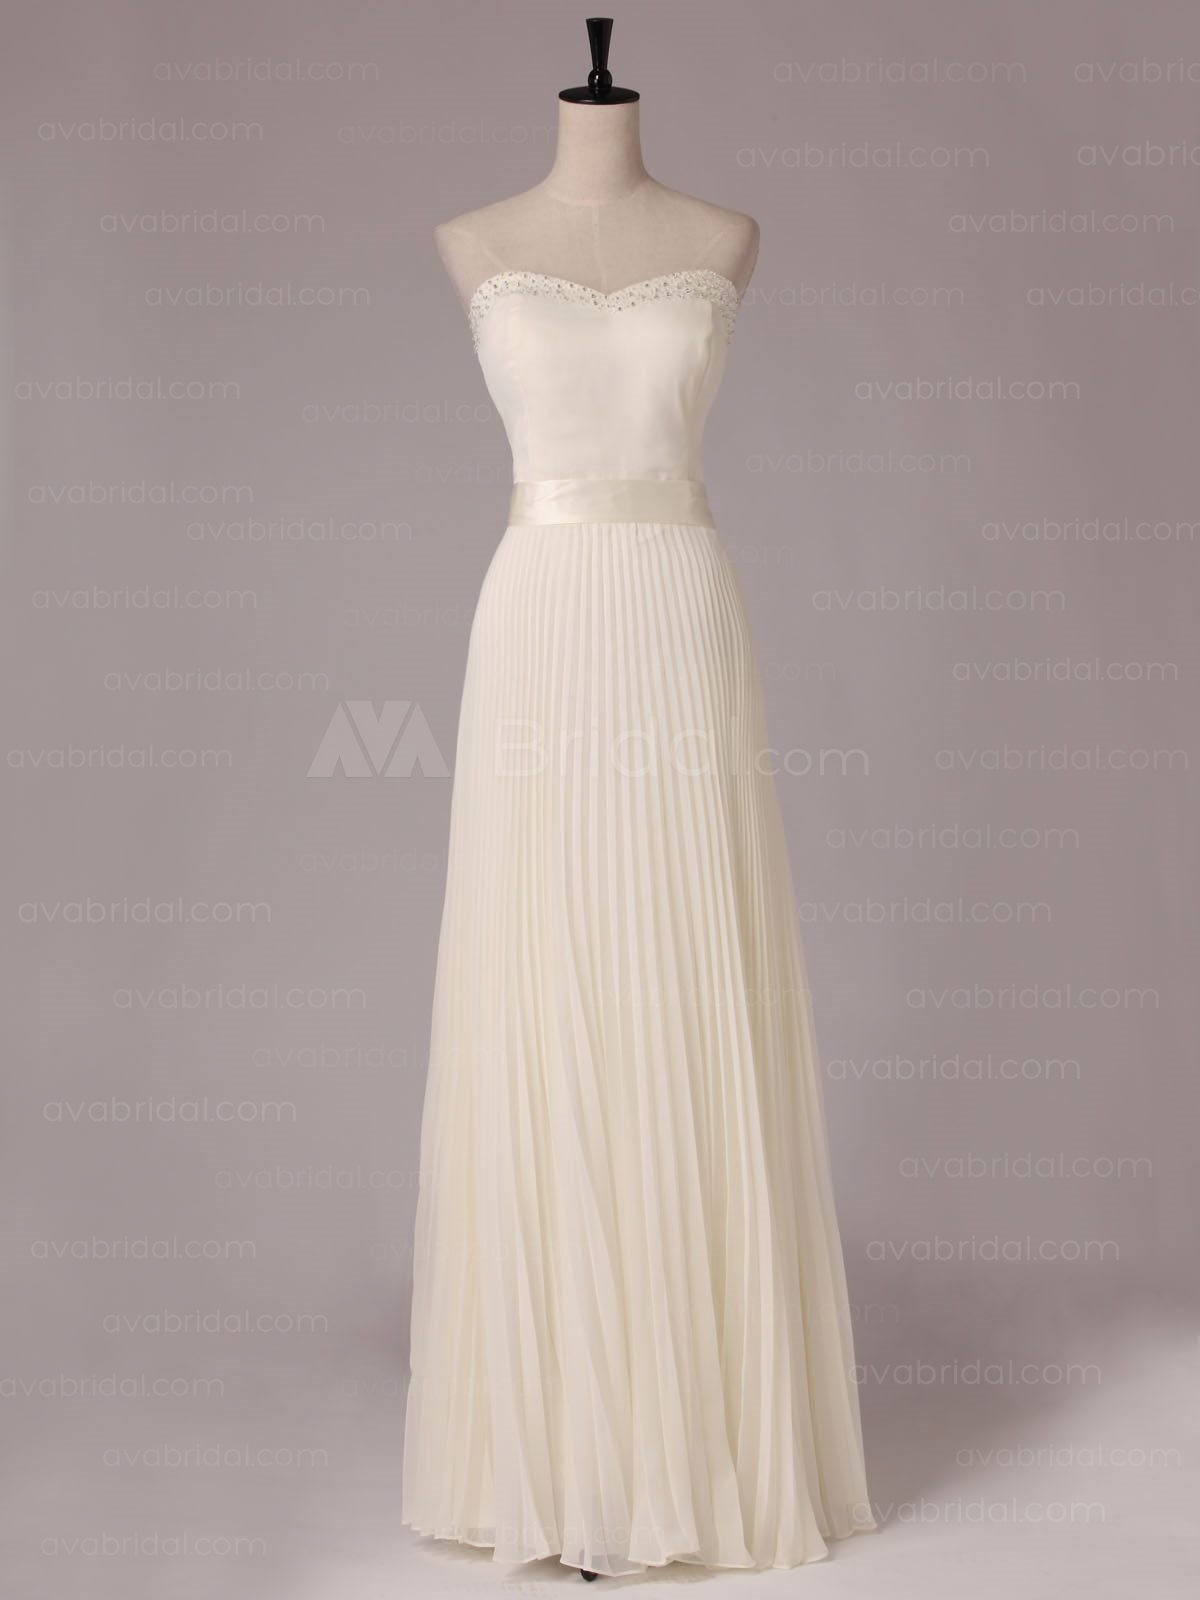 Slim Line Pleated Chiffon Bridesmaid Dress B482-front